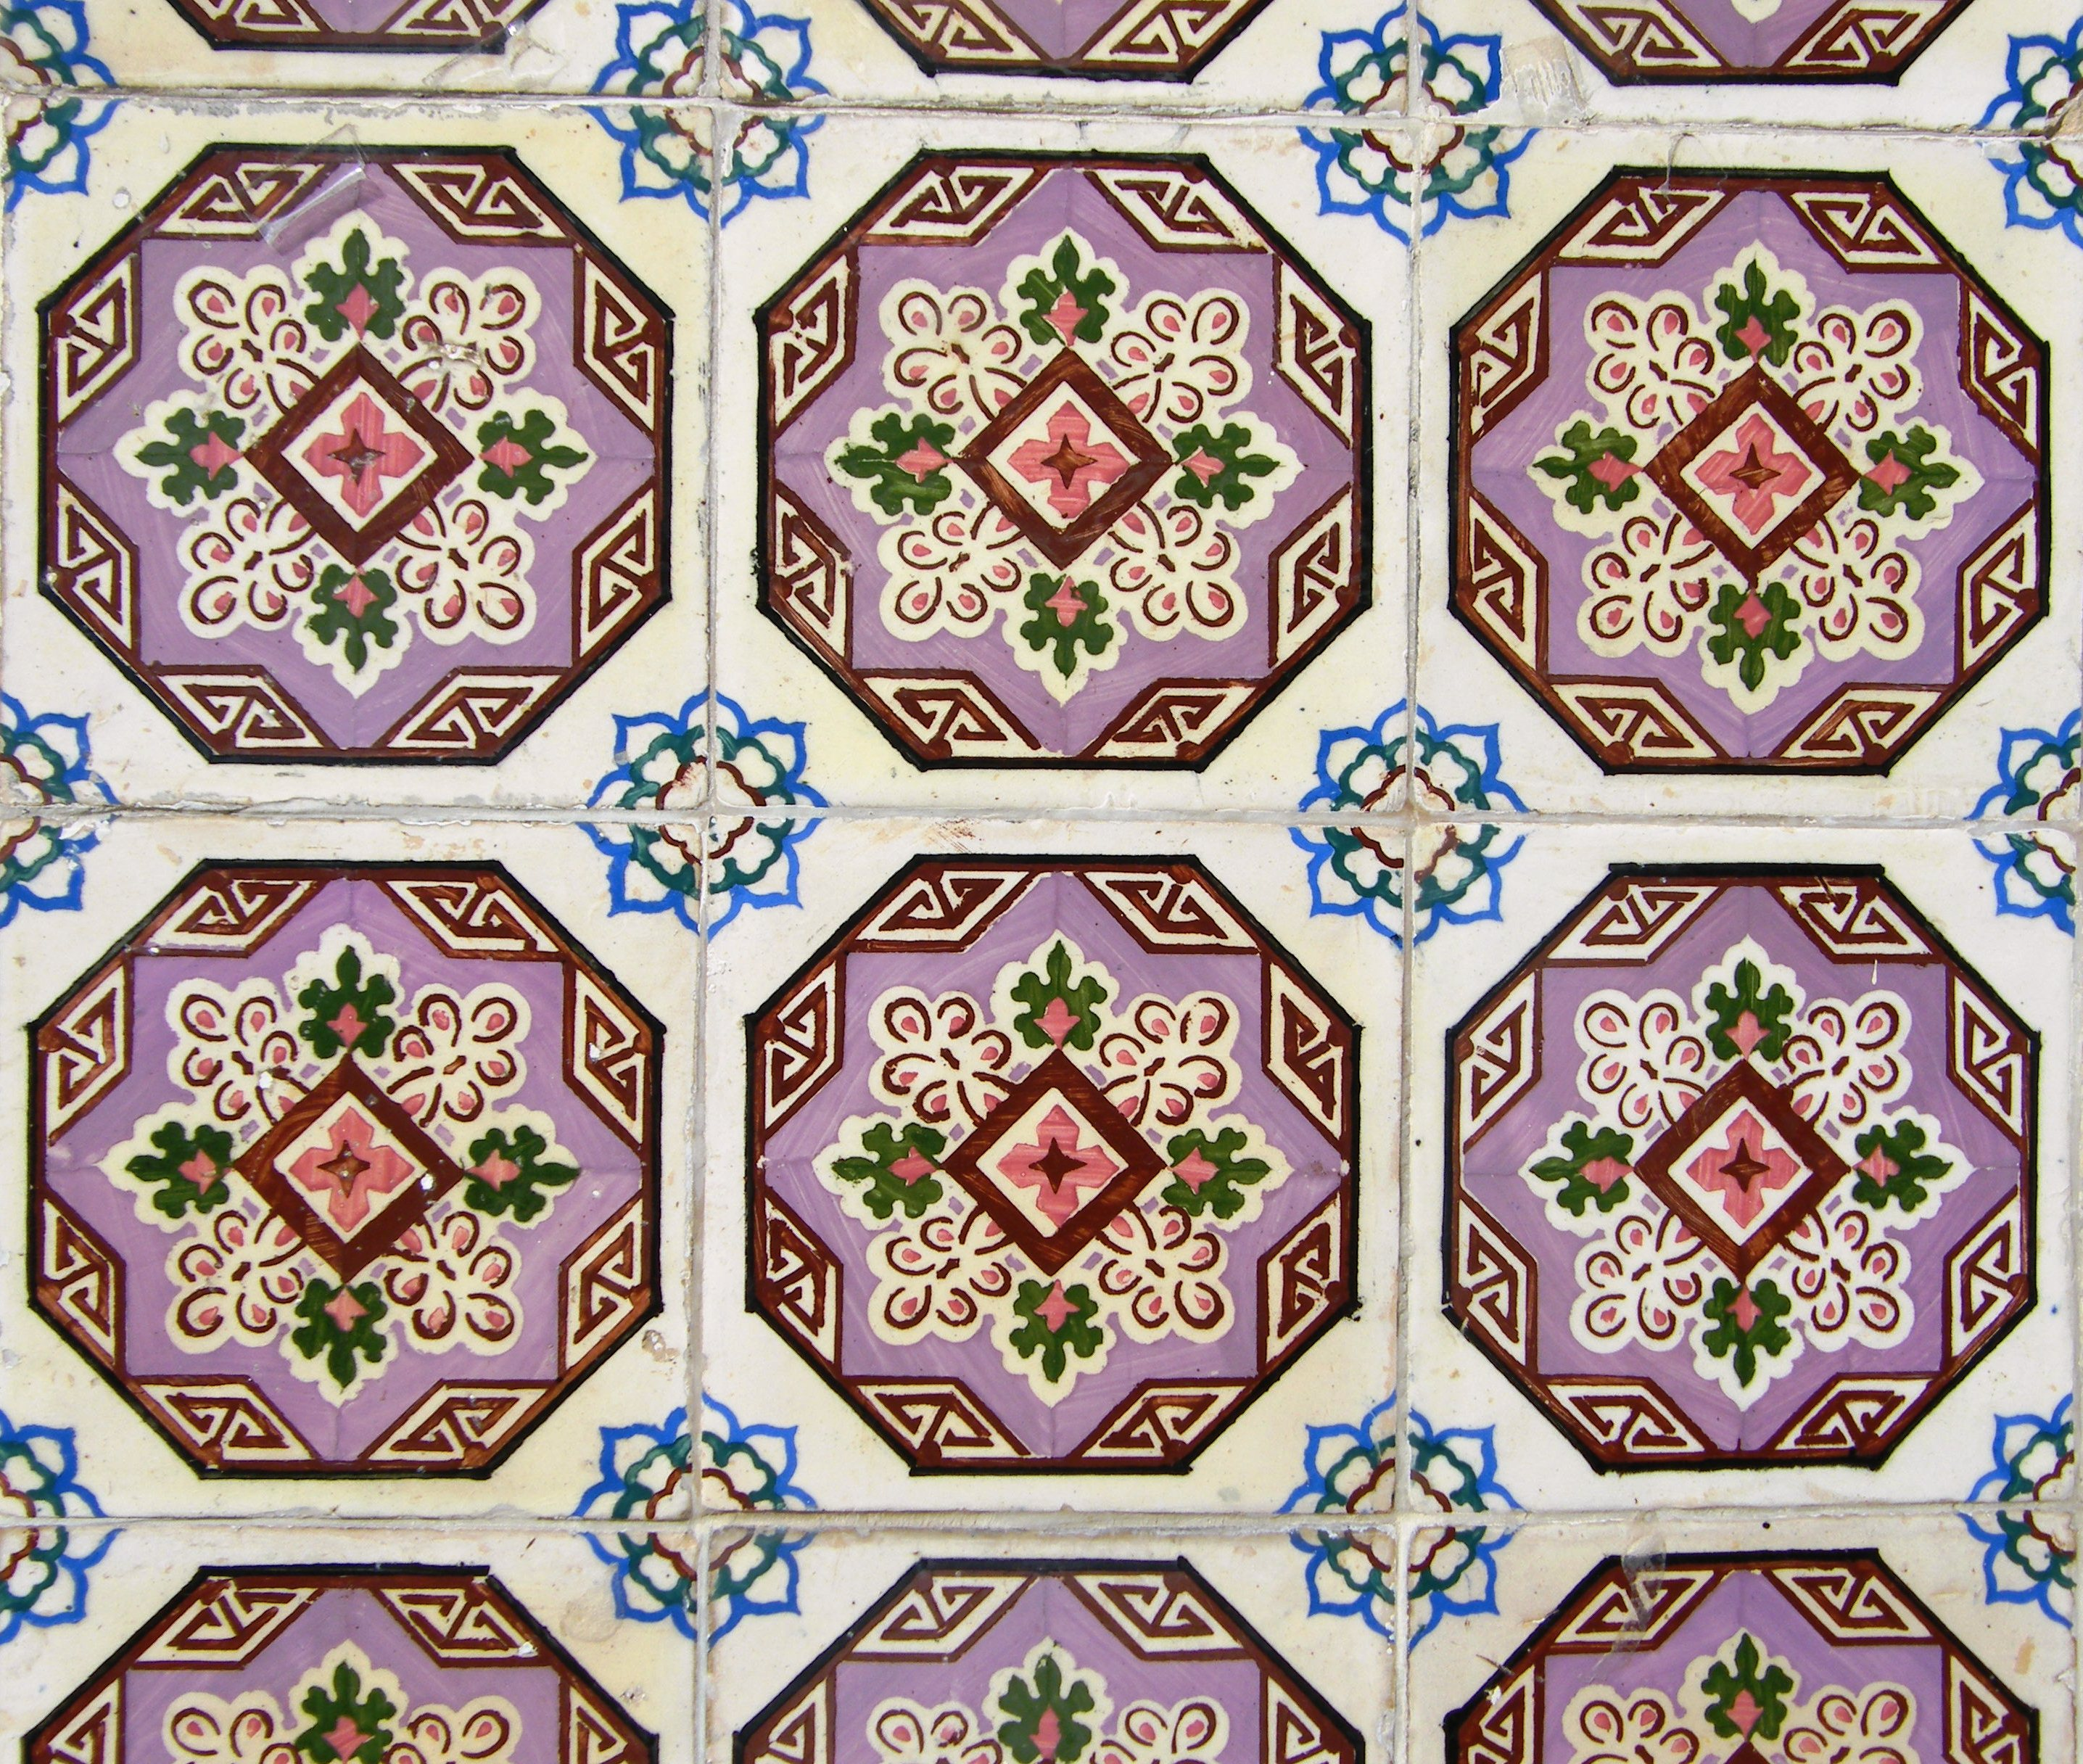 Detail of late 19th century stencilled tiles on a facade in Coimbra